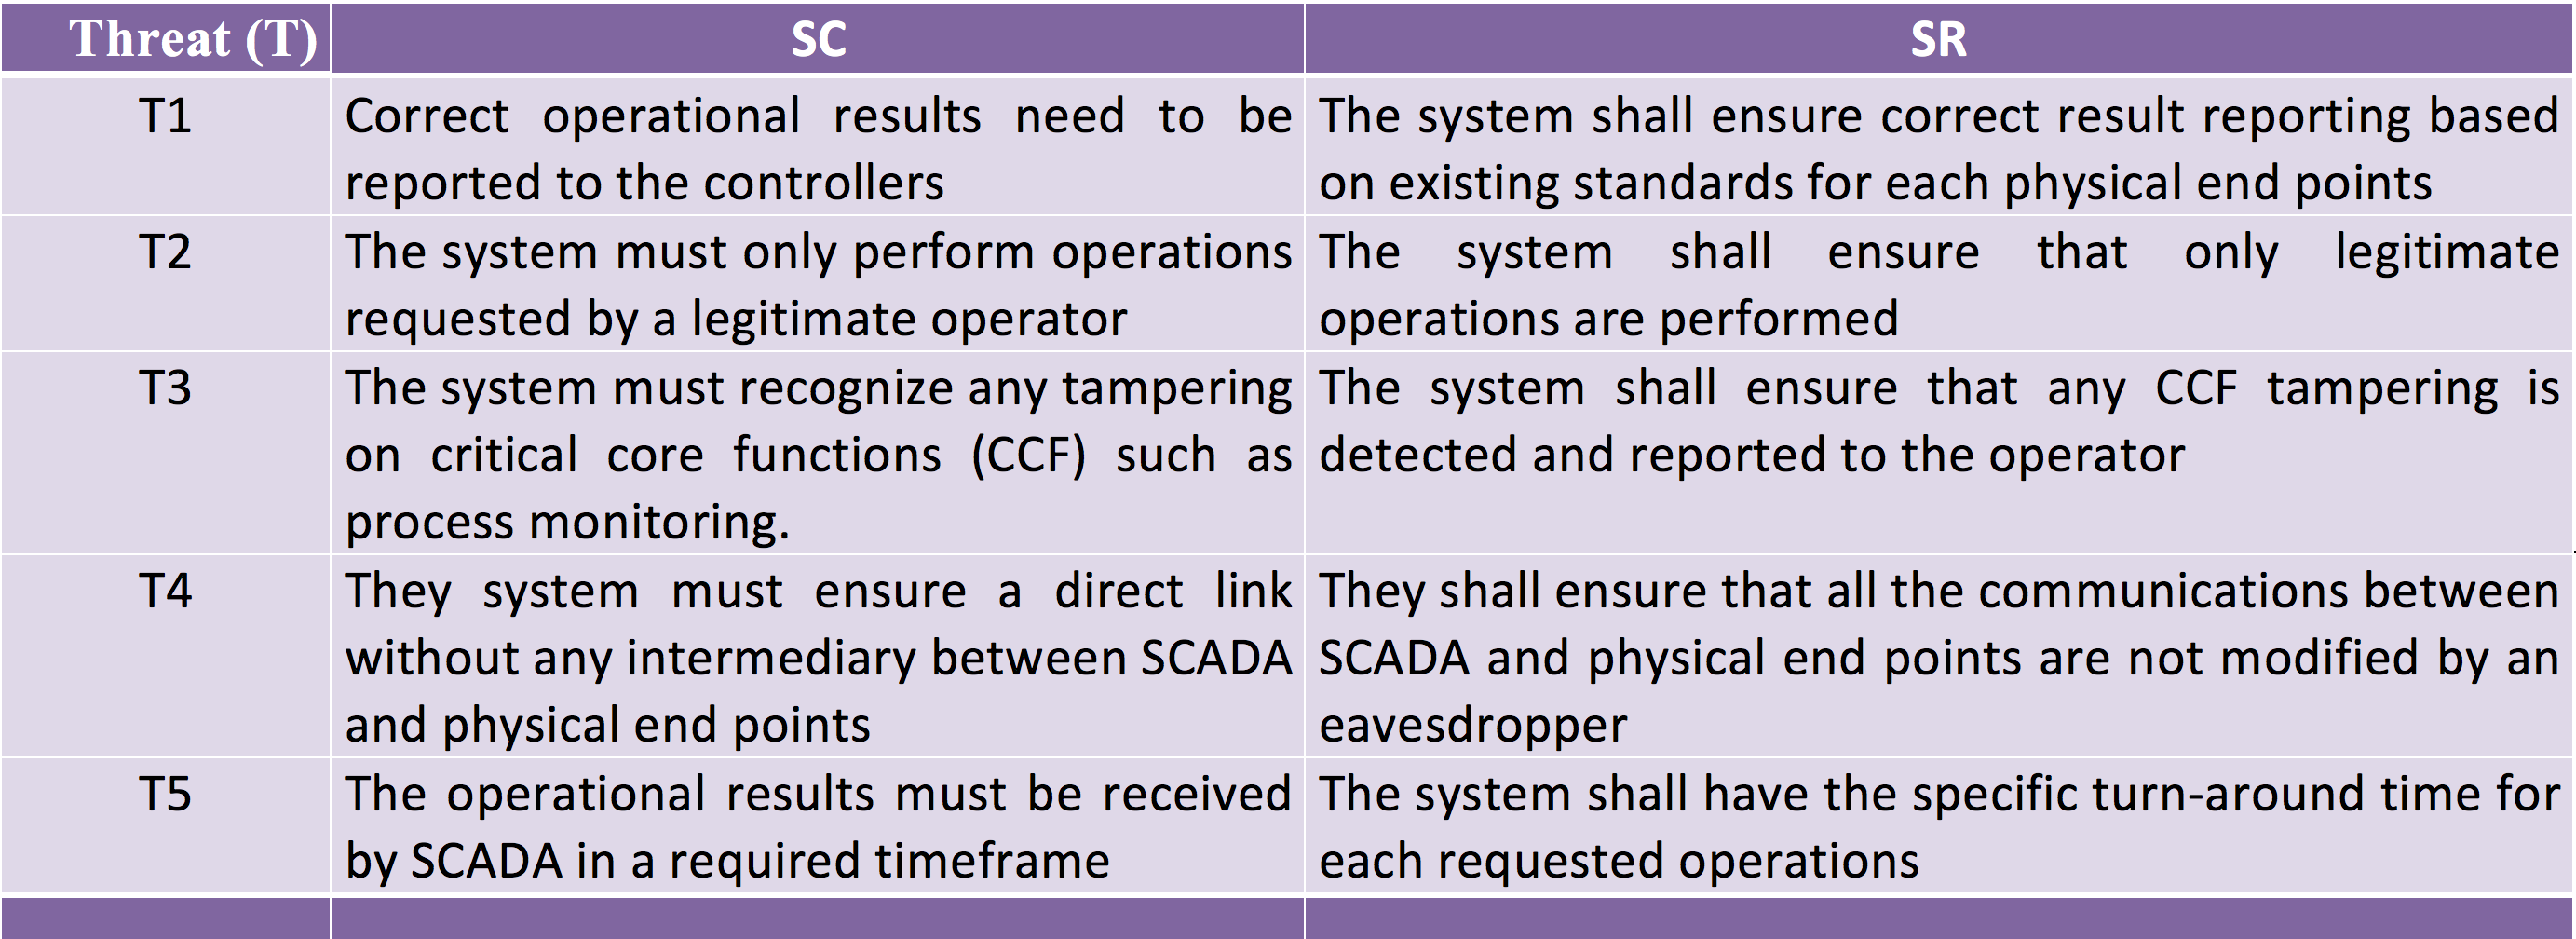 IEEE SYSTEMS JOURNAL 7 Figure 6: System security requirements and constraints to SCADAs.